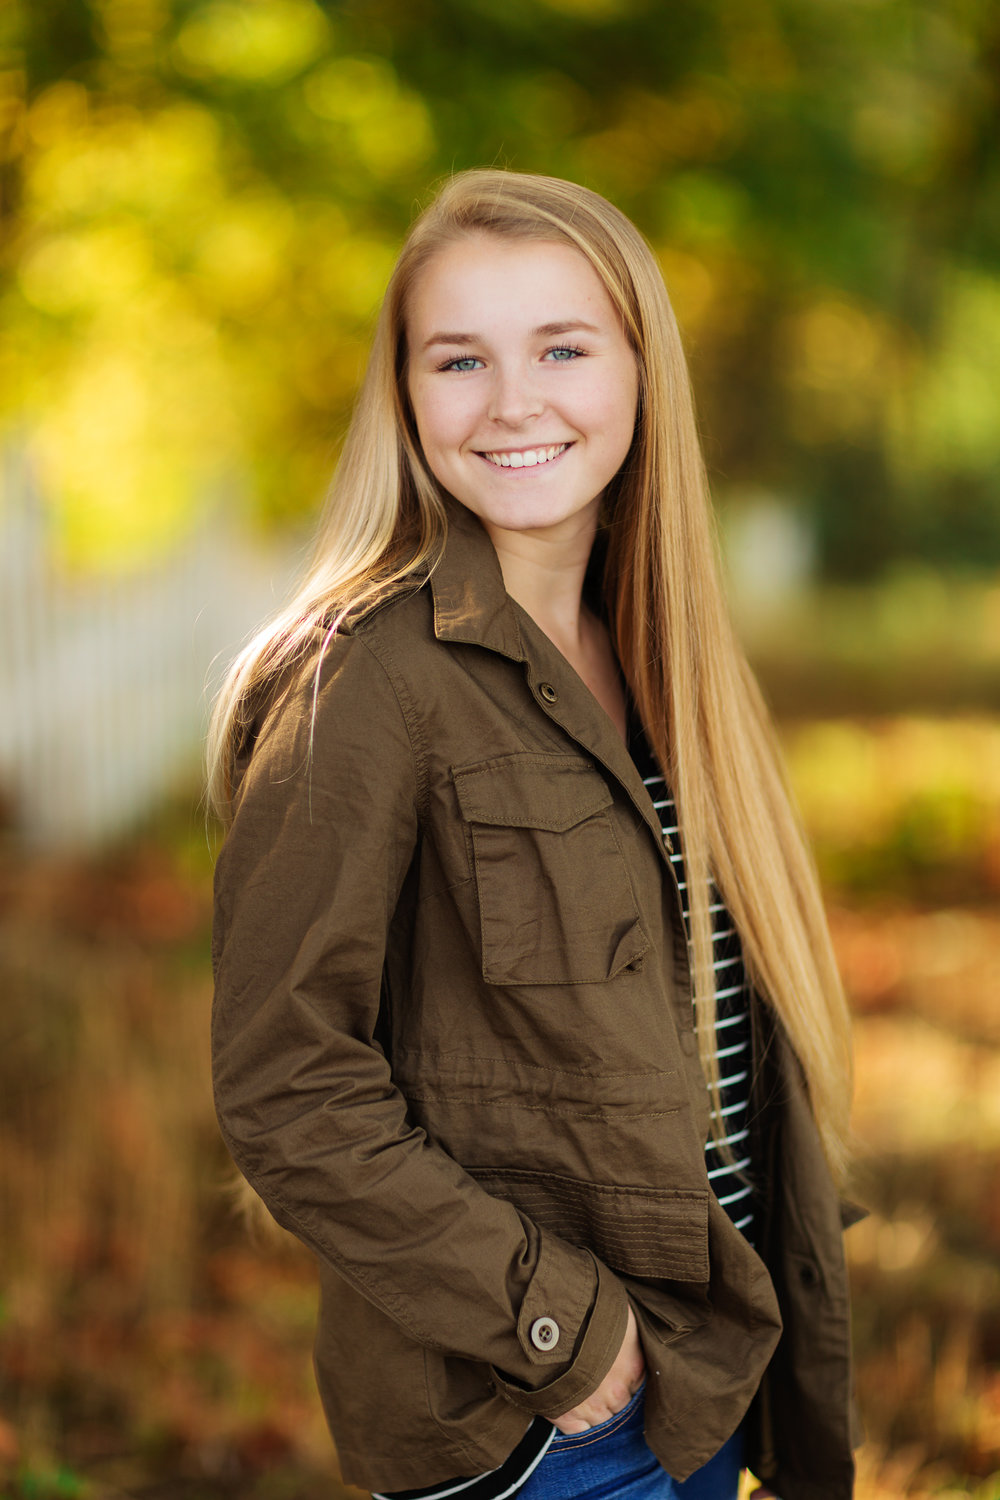 ariellanoellephotography-senior-portraits-highschool-portraiture-monroe-washington-seattle-duvall-woodinville-redmond-kirkland-area-1-9.jpg